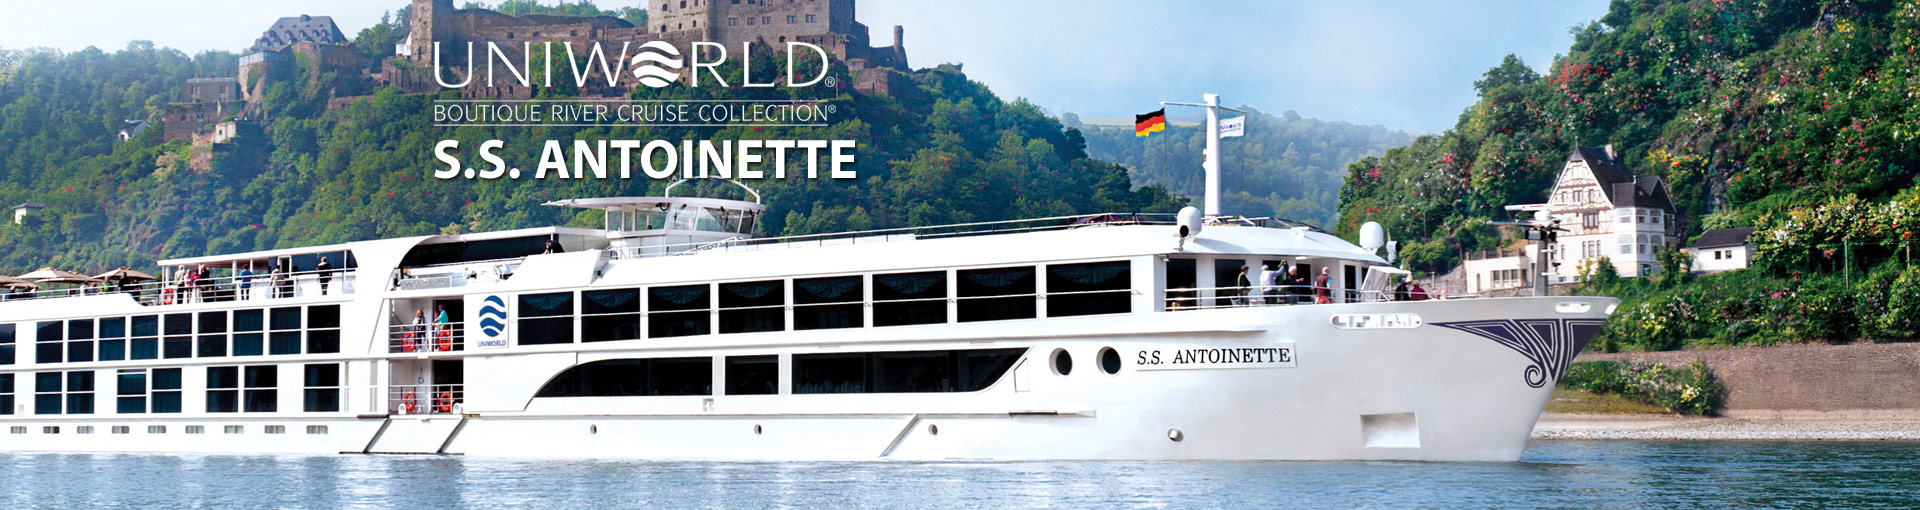 Uniworld River Cruises S.S. Antoinette river ship